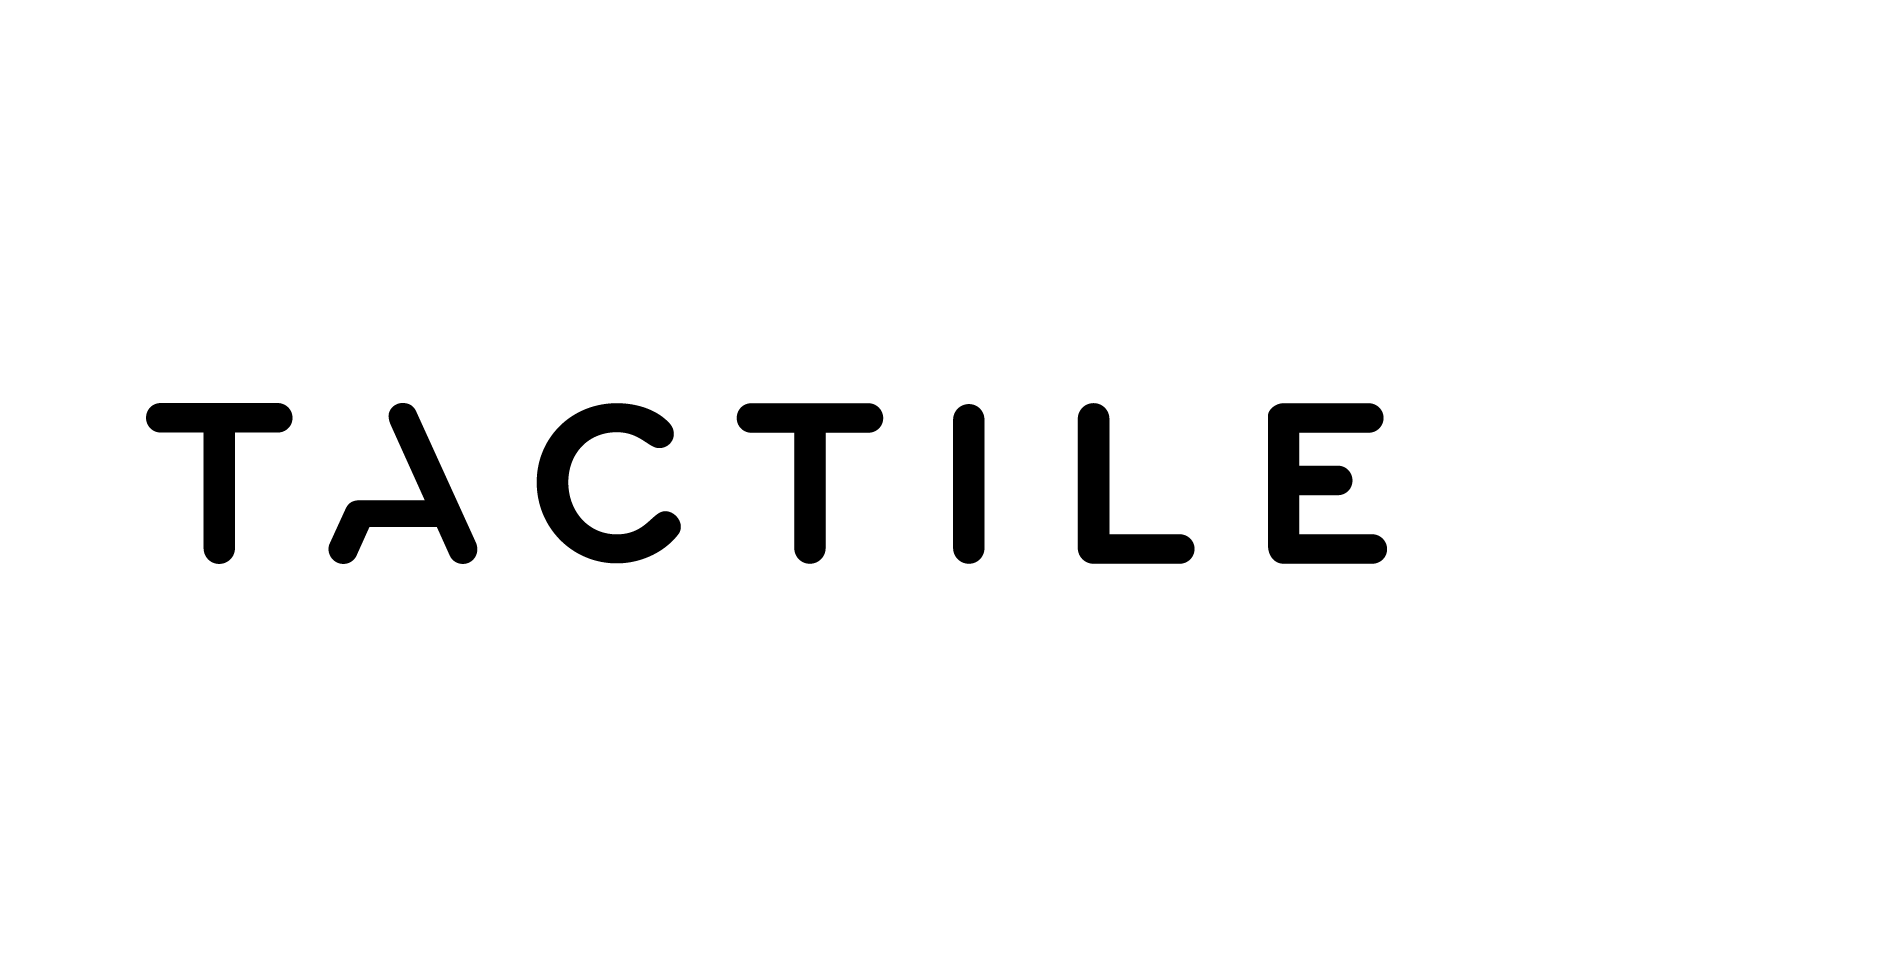 Tactile Inc - I was brought on to assist Tactile with constructing three looks like/works like prototype that consisted of machined wood and metal parts, sensitive optical electronics, and bent tubing. I worked closely with the team's resident mechanical engineer to send out RFQs, order custom components, and make sure that all necessary parts arrived on time. I was also responsible for careful assembly and packaging of the prototypes in a timely fashion for delivery to Tactile's client. I also performed extensive research into volume manufacturing methods to help inform the Tactile engineering team for a pitch they presented to a large client they were pitching.